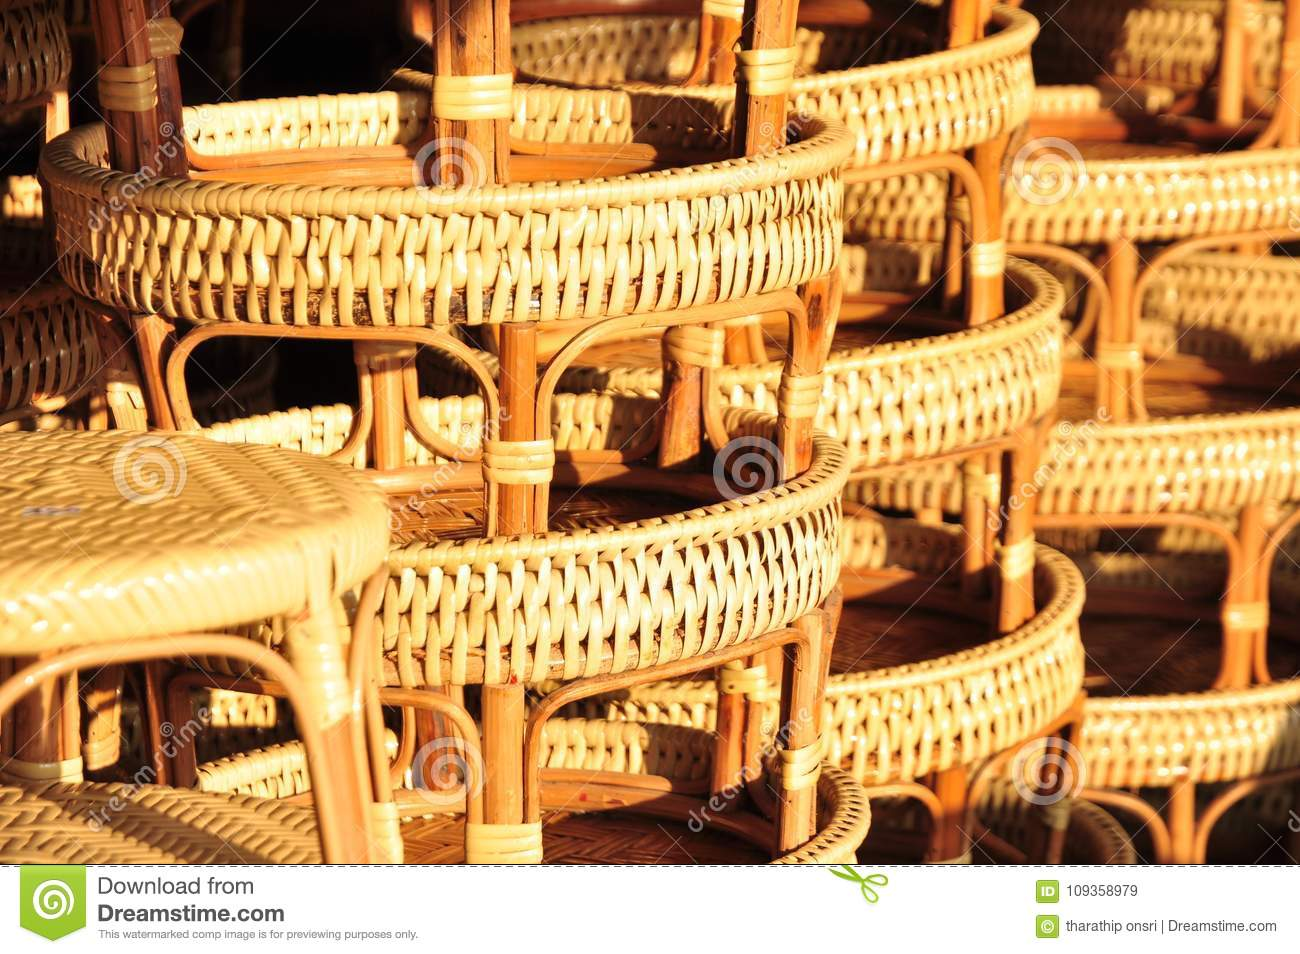 Download Basket Wicker Is Thai Handmade. It Is Woven Bamboo Texture For  Background And Design